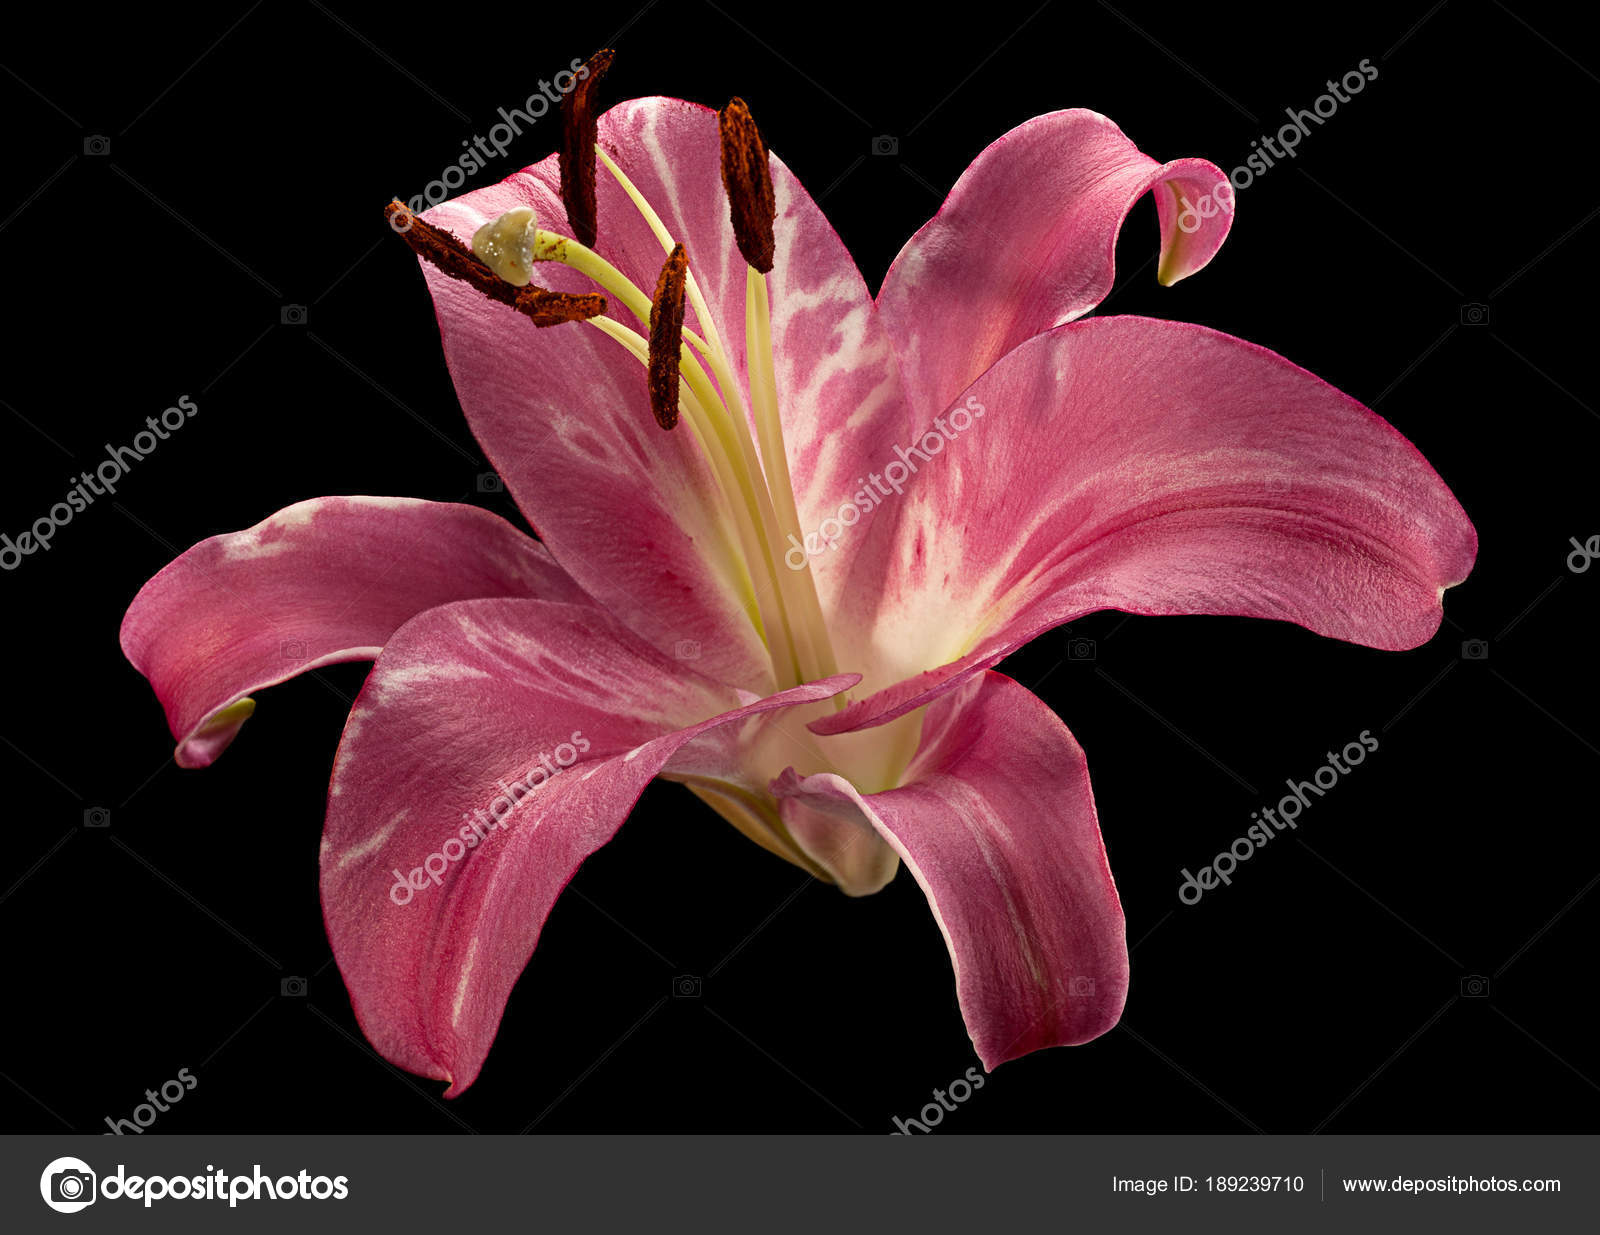 Pink lily flower on black stock photo shance2018 189239710 pink lily flower on black stock photo izmirmasajfo